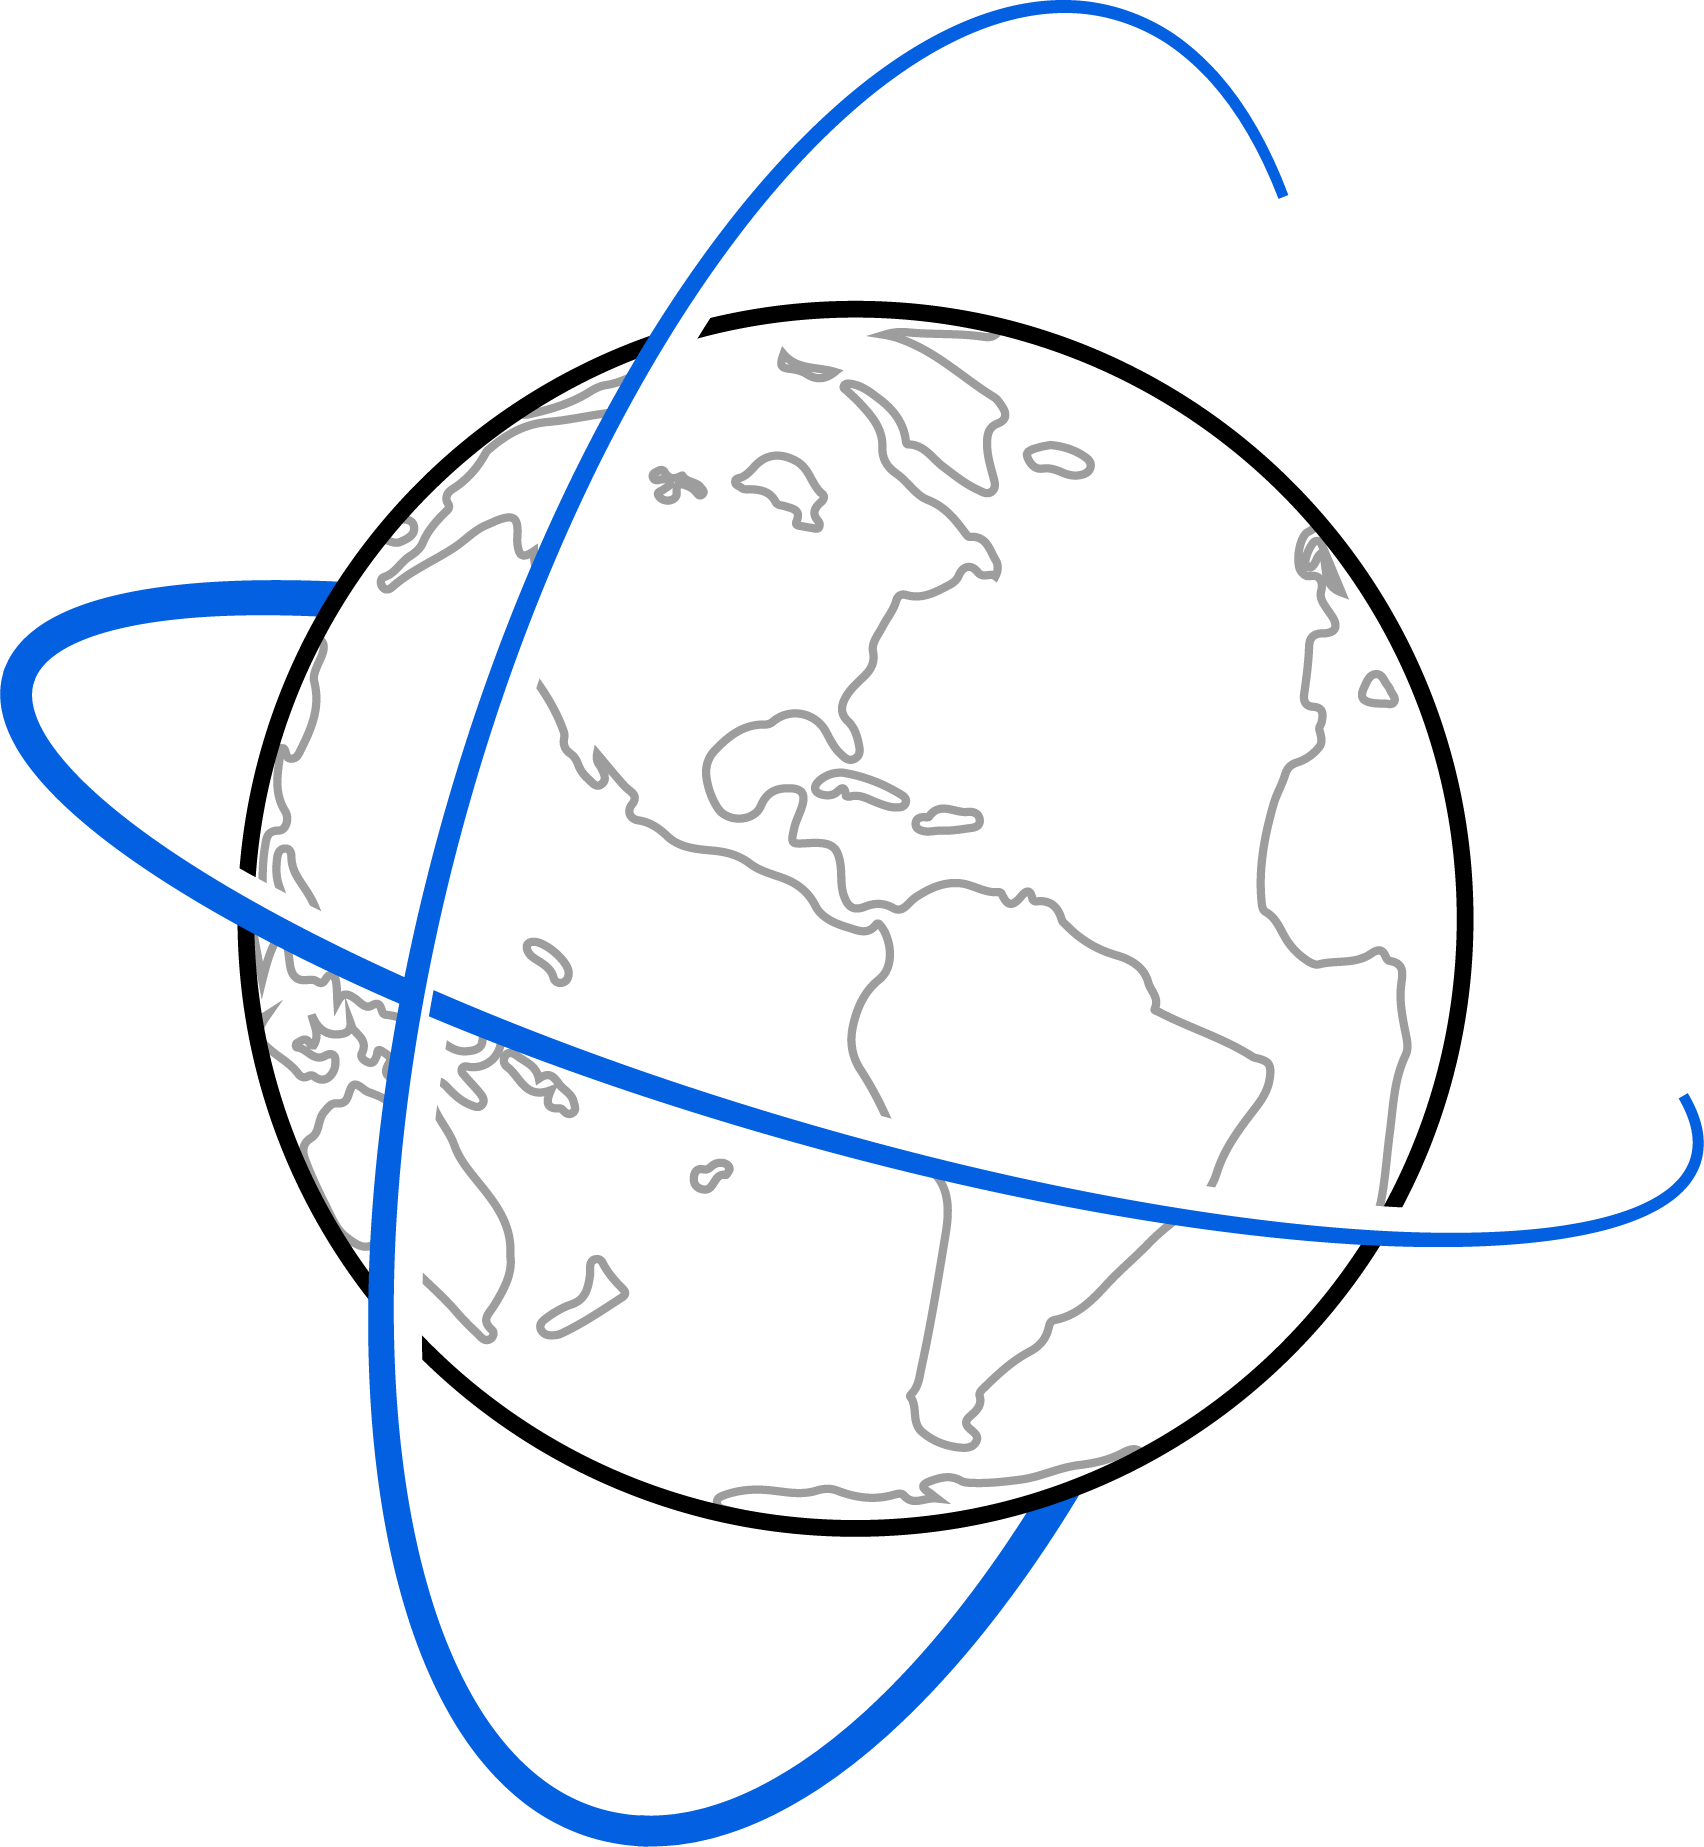 EARTH_ORBITS_1.png